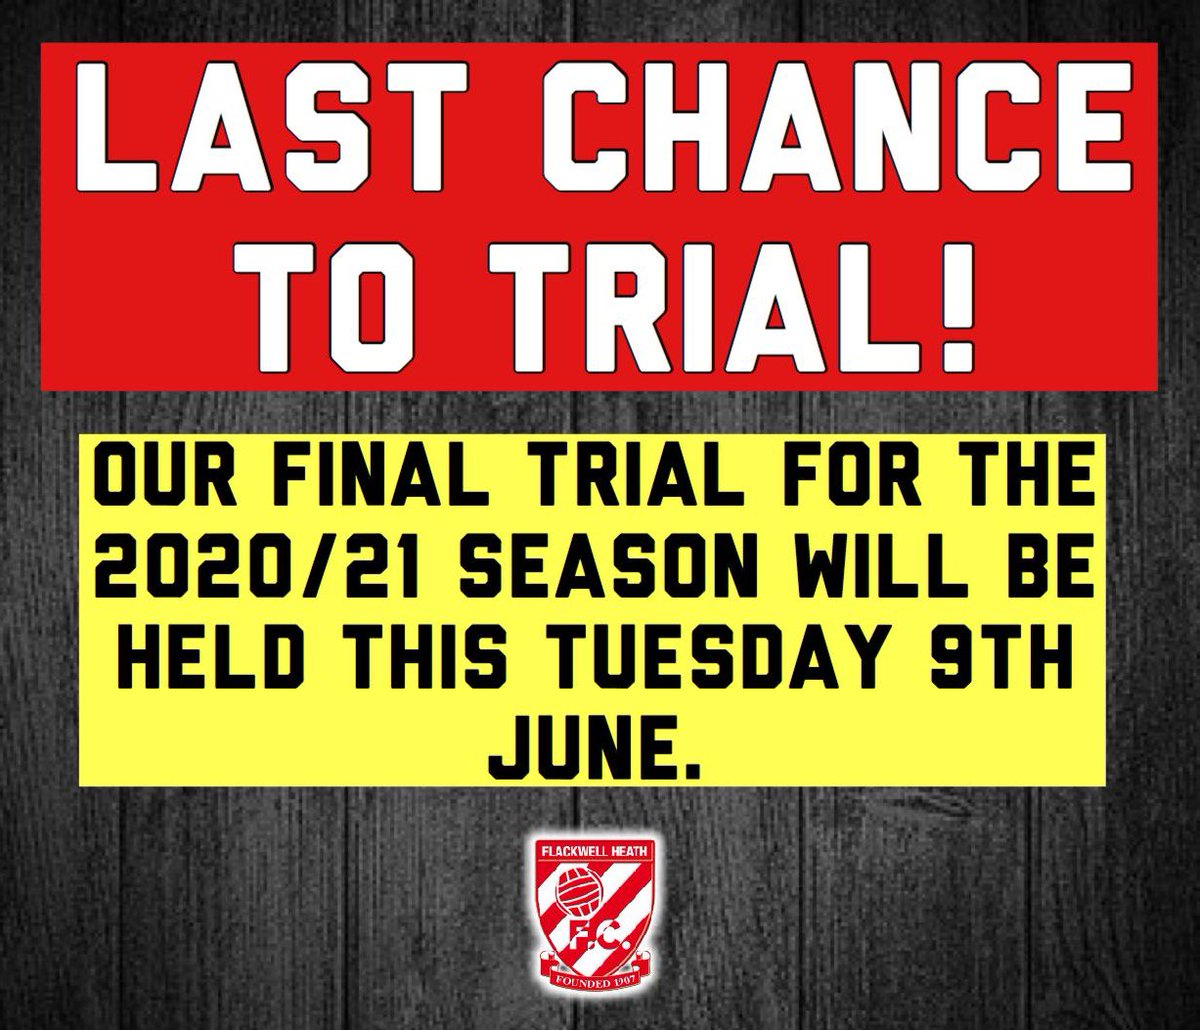 Last chance to trial! These trials will be ran slightly differently than normal however we will be working in small non-contact groups to assess technique, attributes and attitudes. Please contact danmuino@outlook.com for trial details.